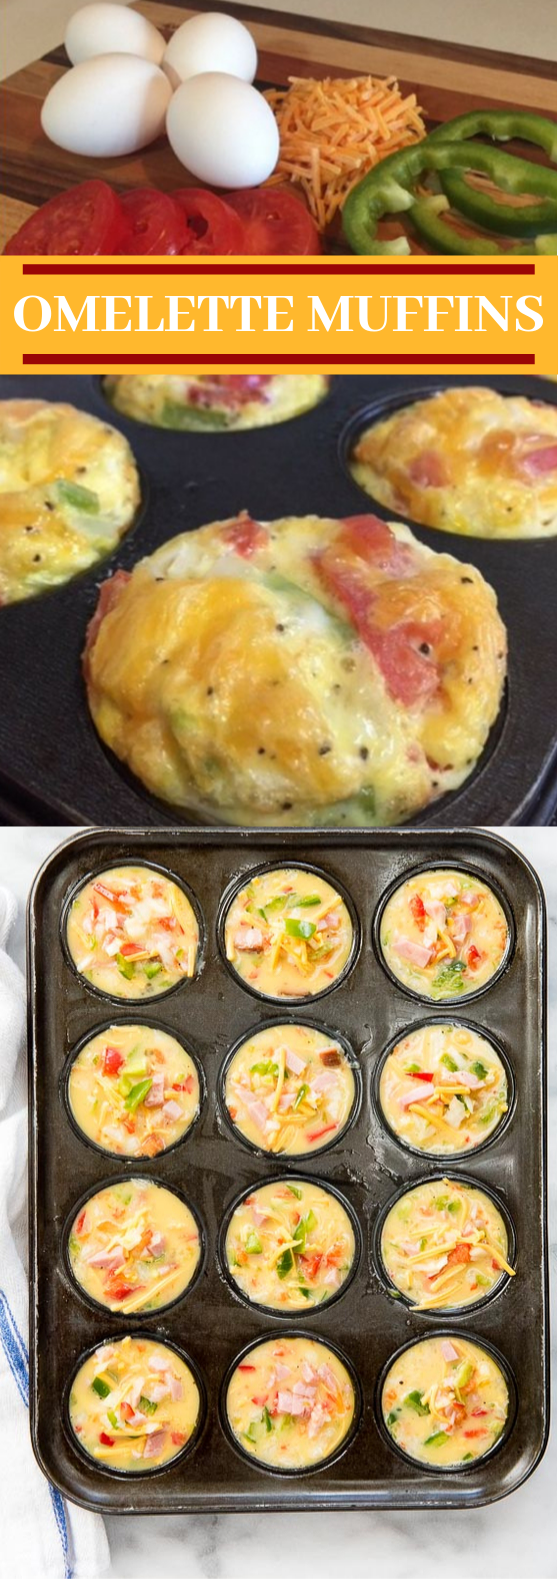 Omelette Muffins #healthy #breakfast #keto #lowcarb #glutenfree #insurancequotes